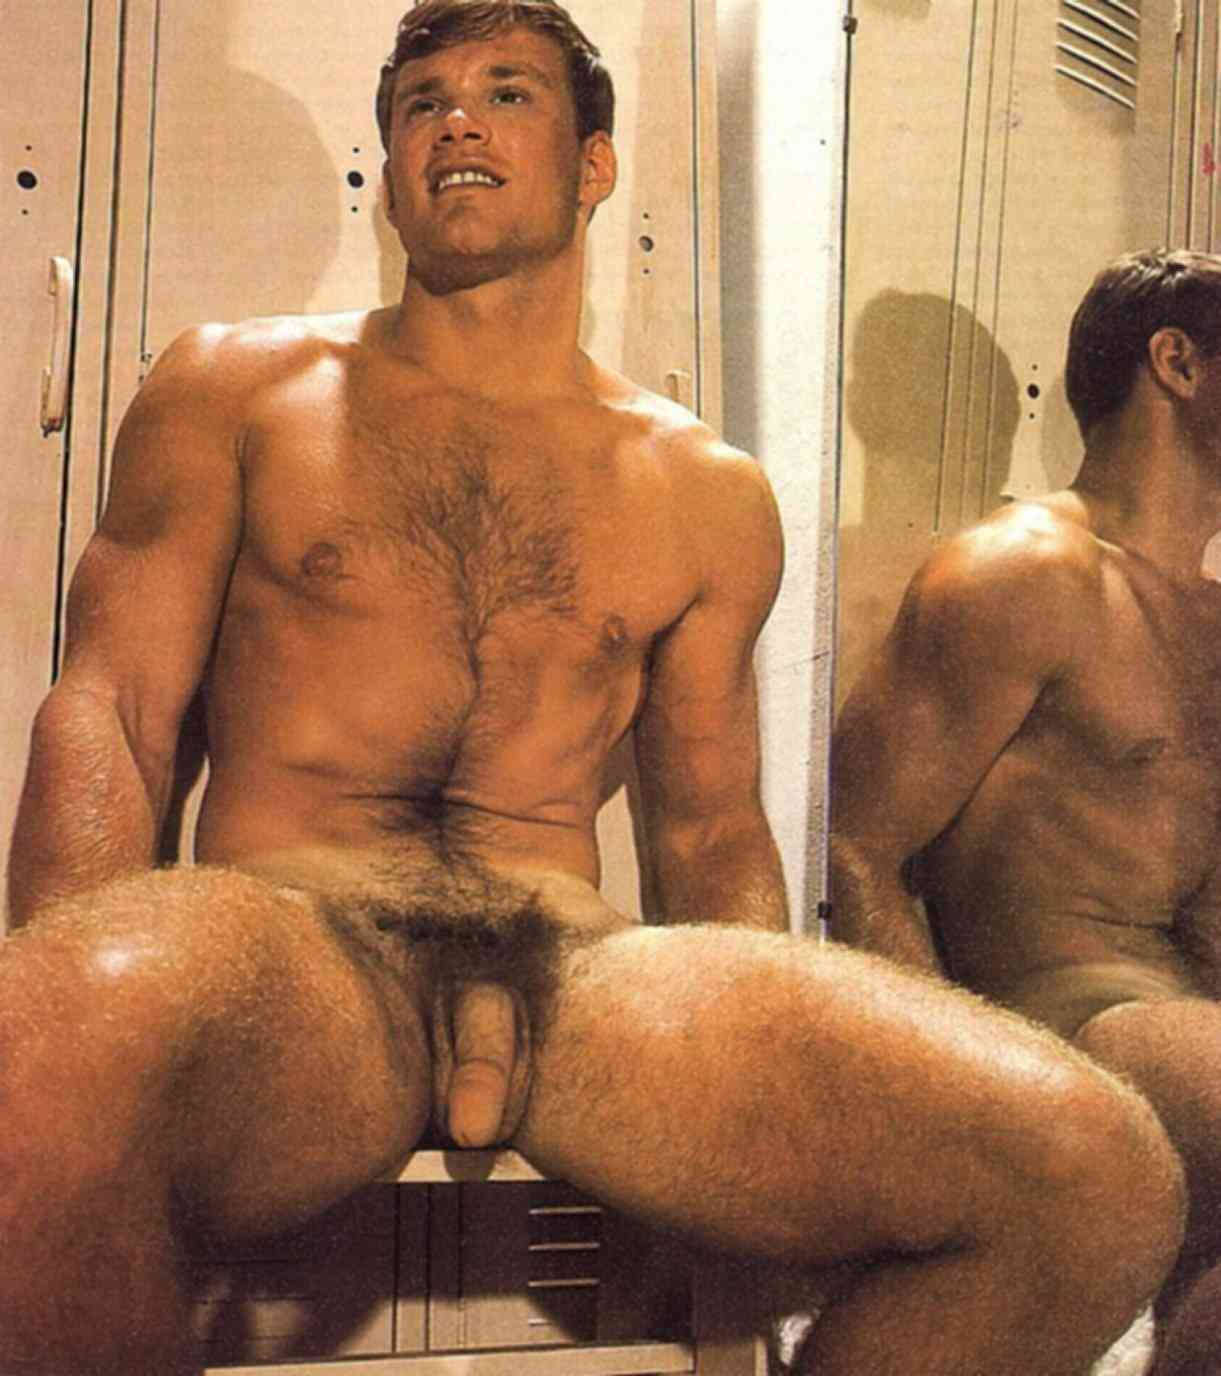 guy gym naked